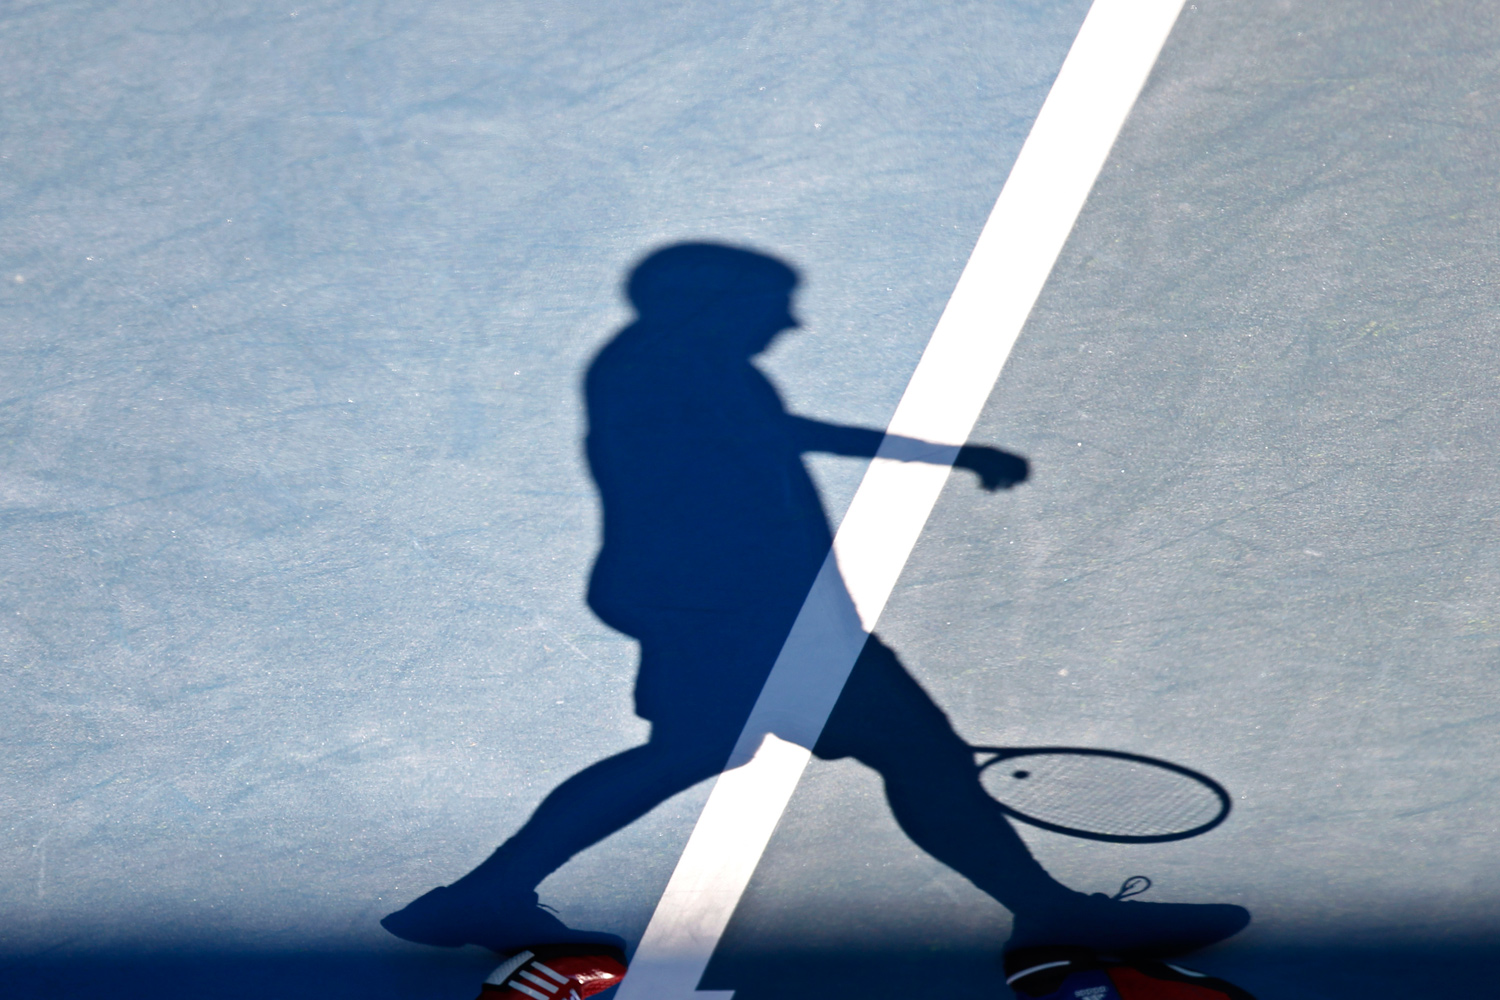 January 14, 2011. Novak Djokovic of Serbia casts his shadow as he walks across the court during a training session at Melbourne Park ahead of the Australian Open tennis tournament.